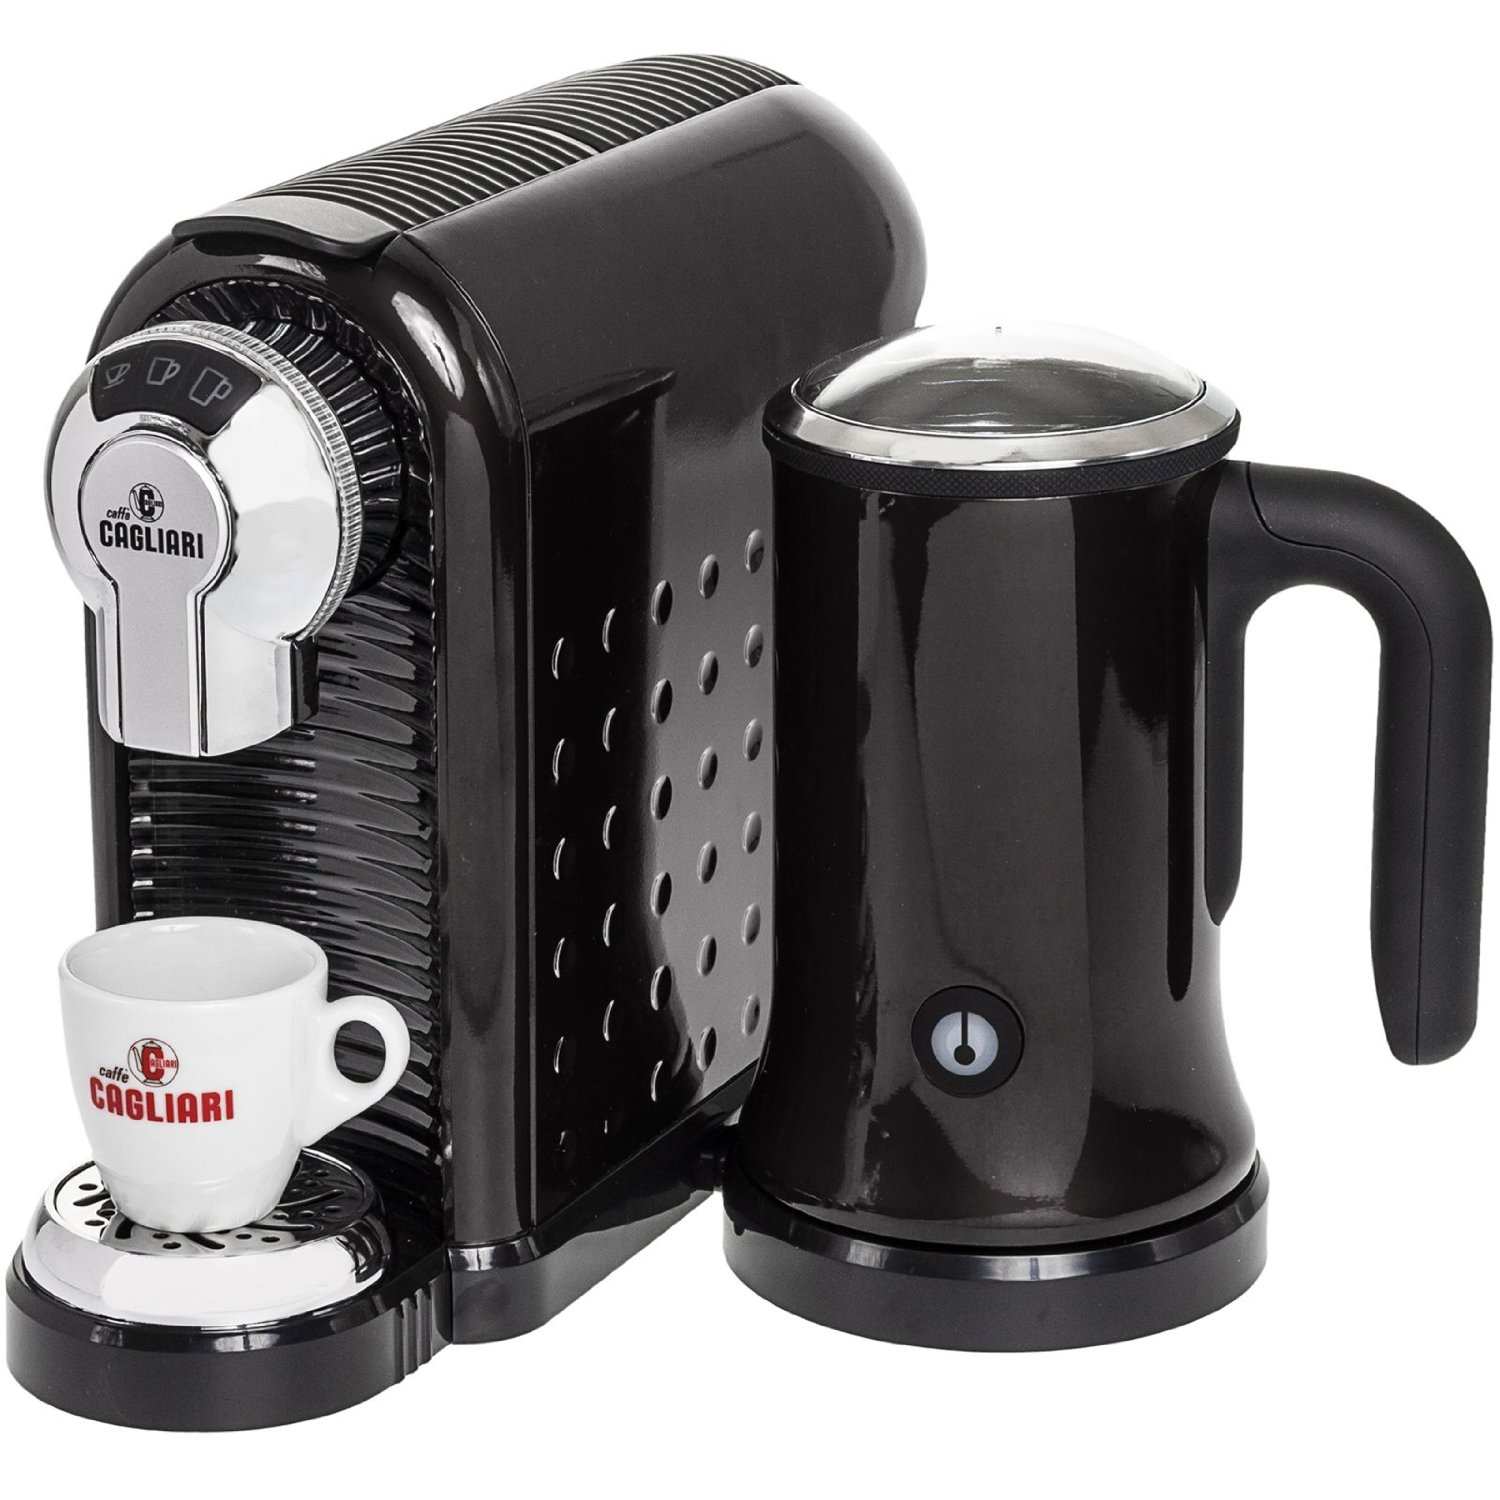 Italian Coffee Maker Pods : Caffe Cagliari Italian Espresso Machine Review